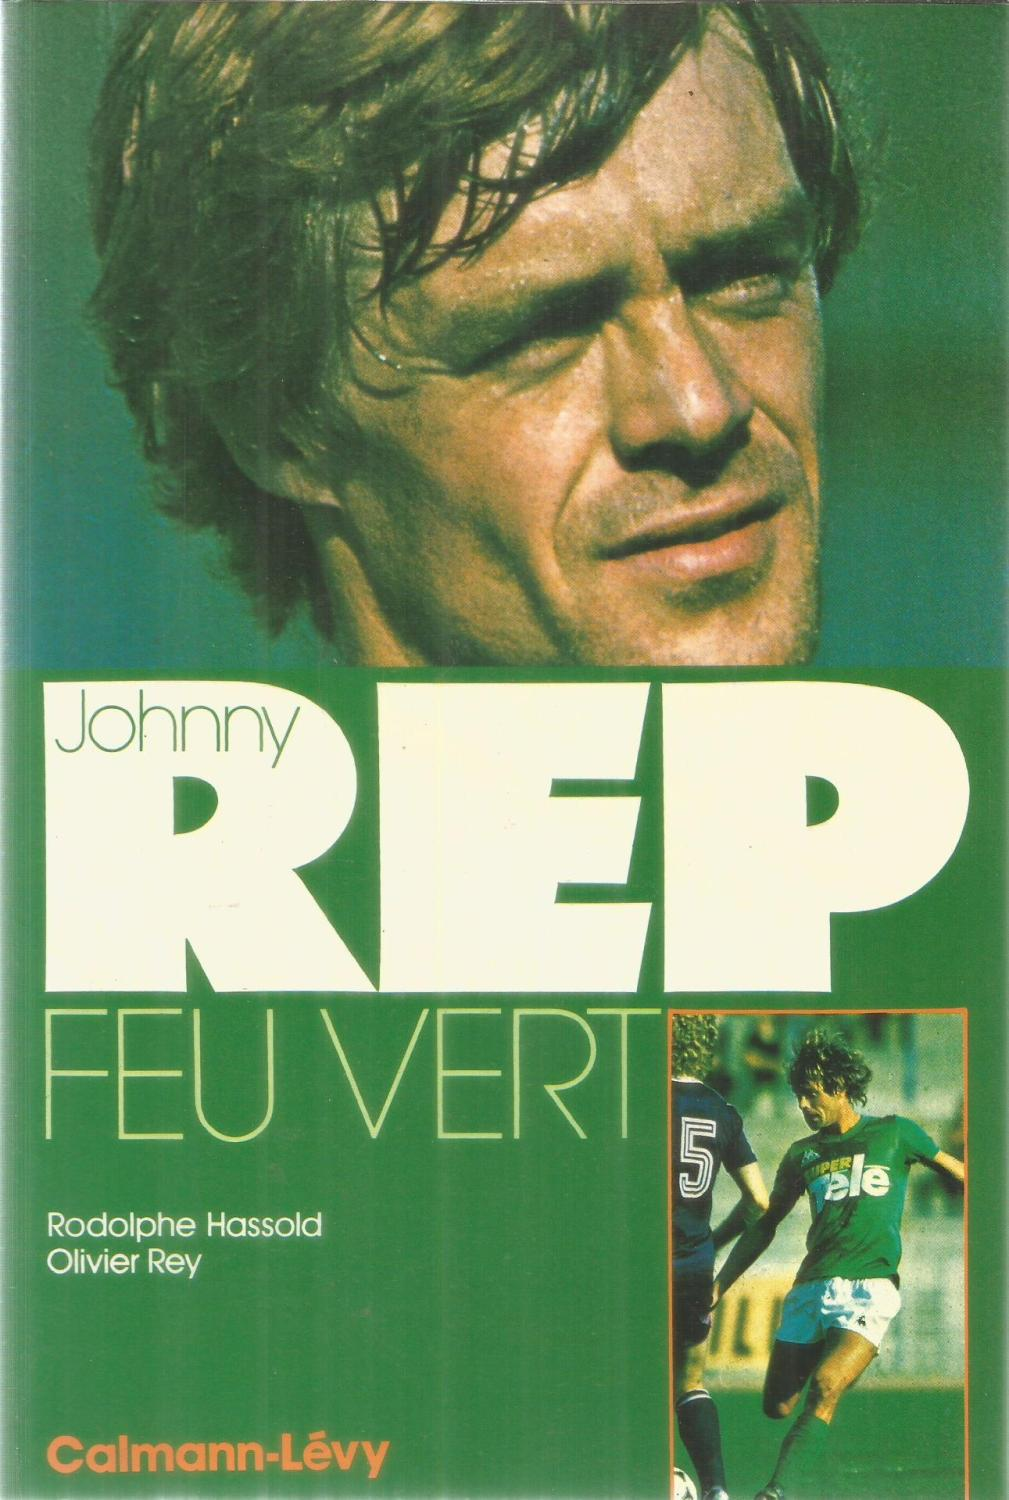 Johnny Rep feu vert by Hassold Rodolphe et Rey Olivier